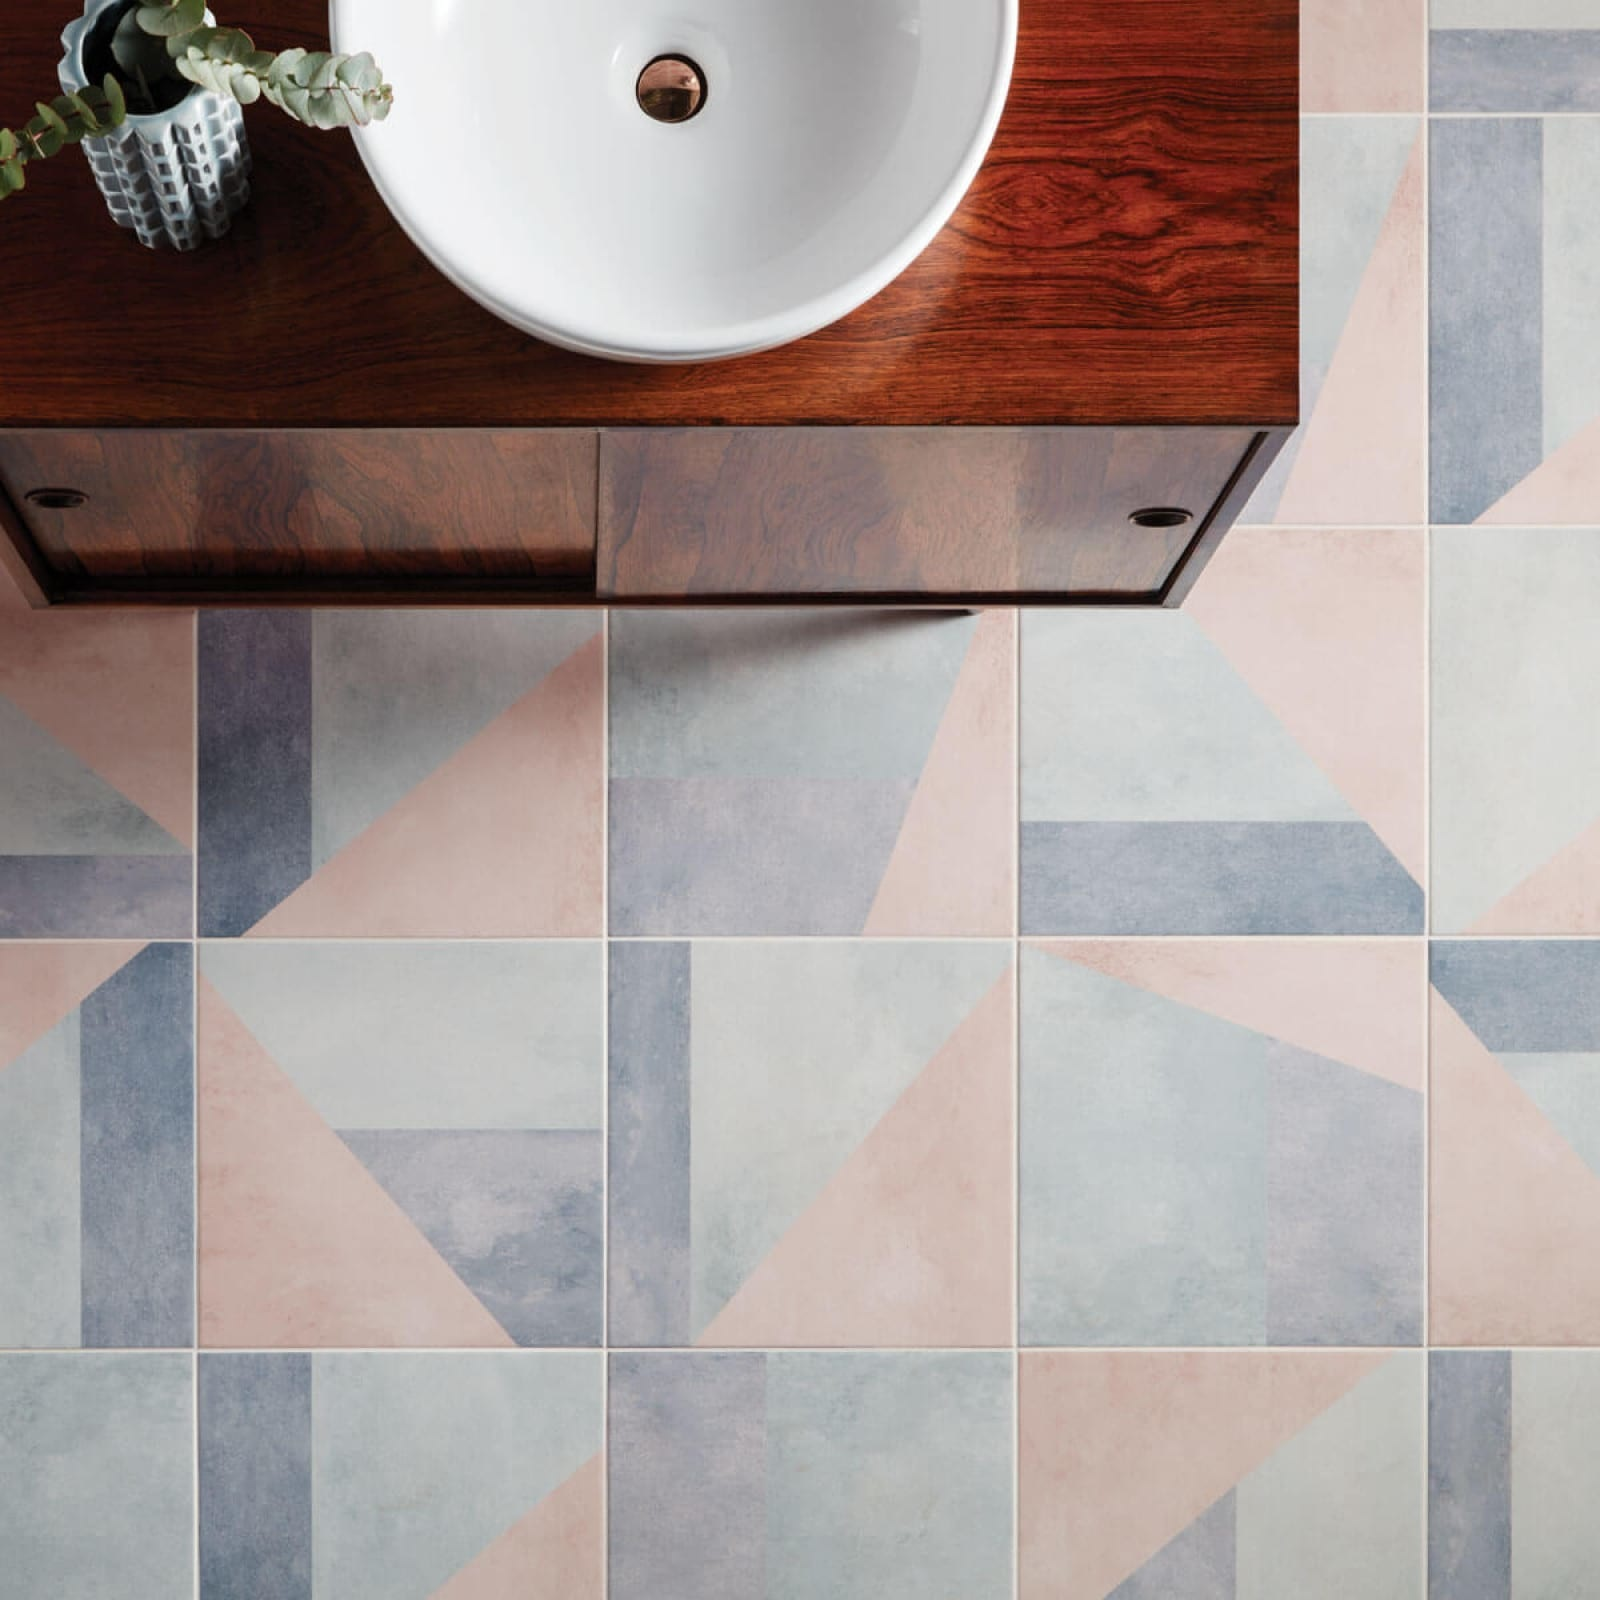 Ted Baker pastel tile collection, £44.99, Luxury Tiles UK